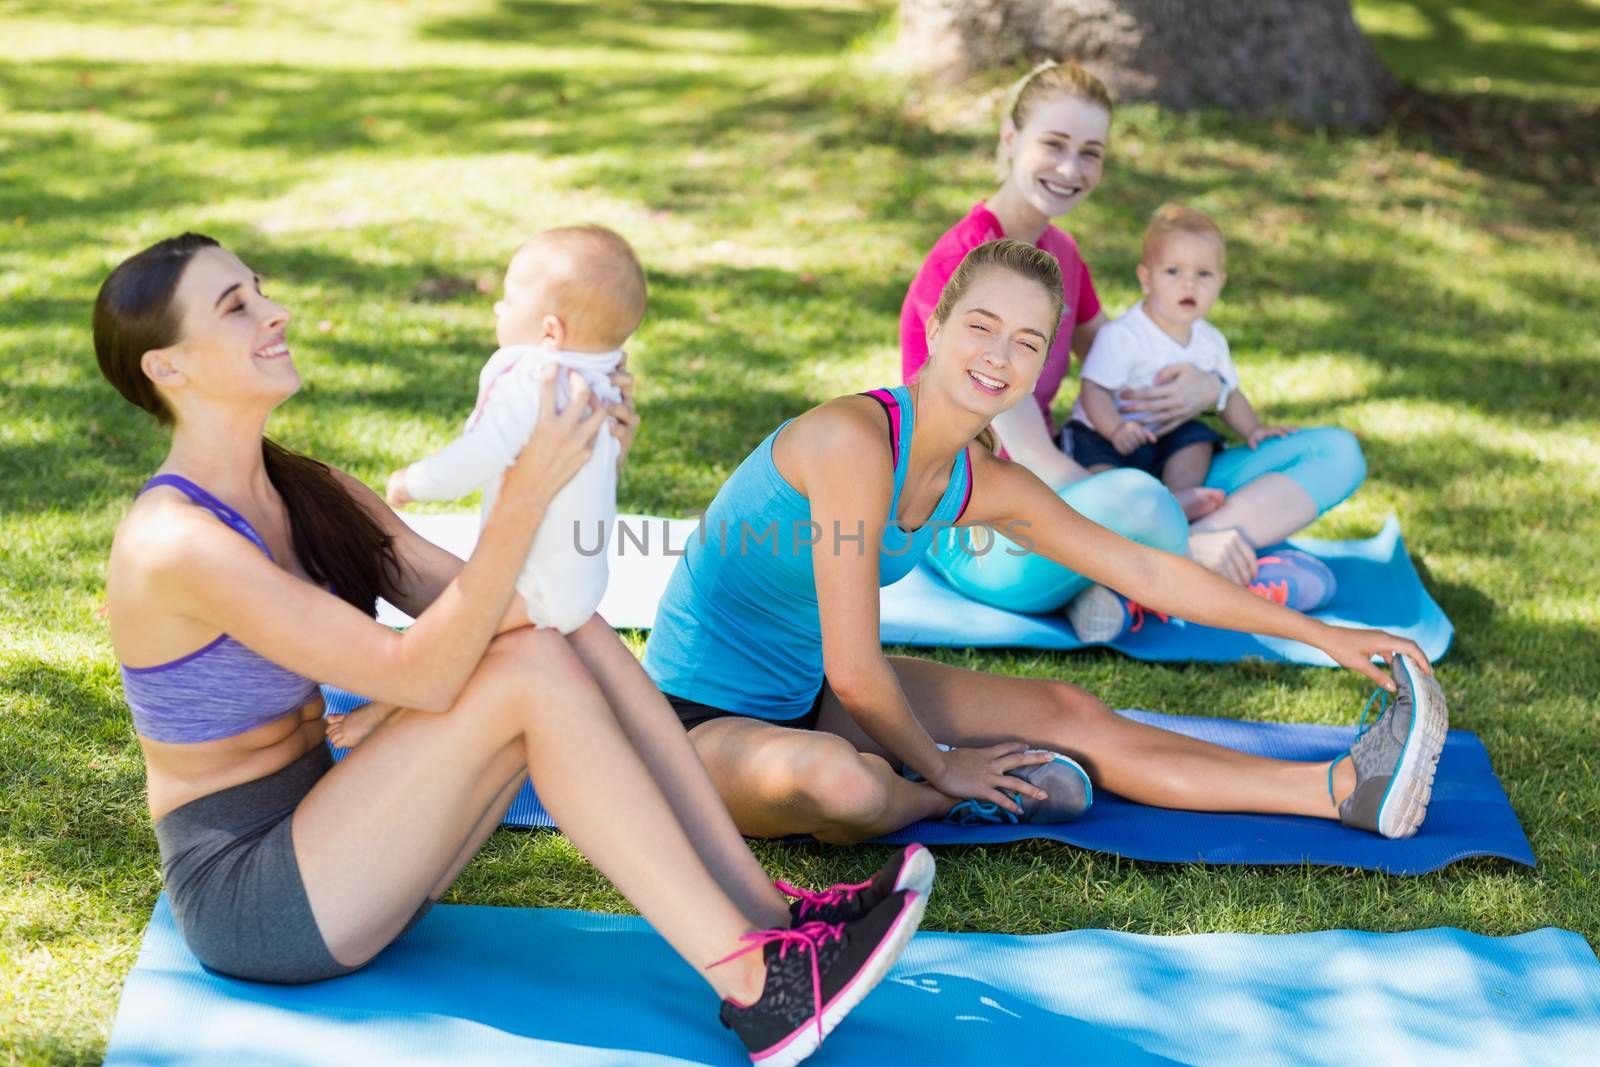 Women holding their babies while exercising in park